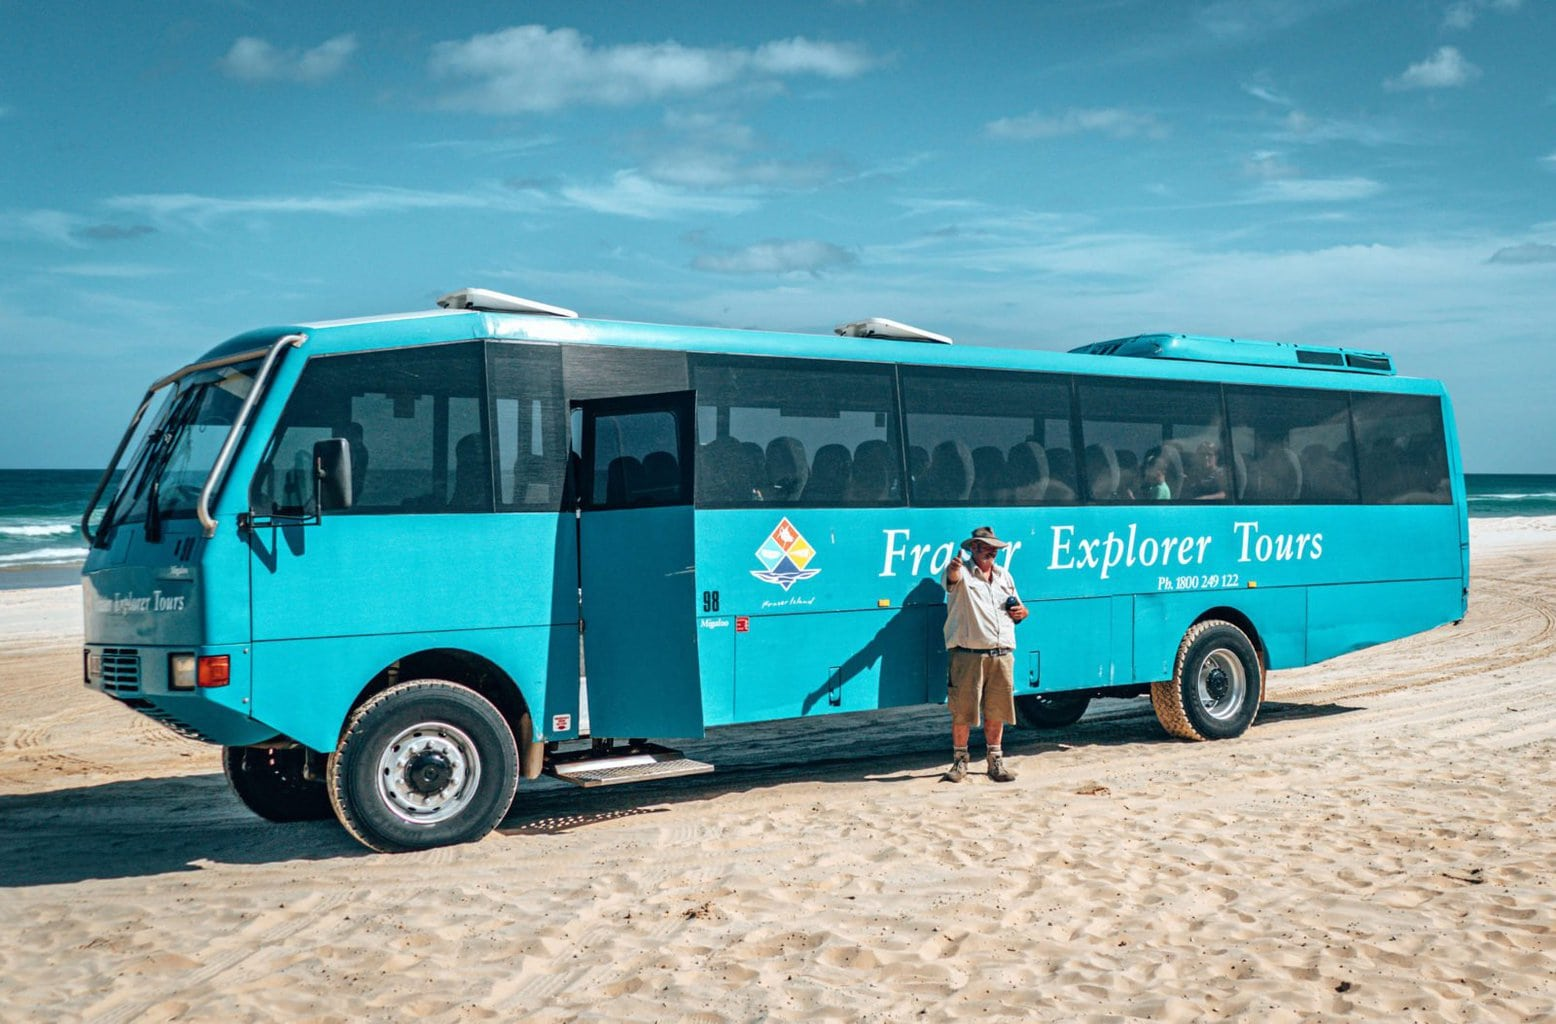 A tour with Fraser Explorer Tours